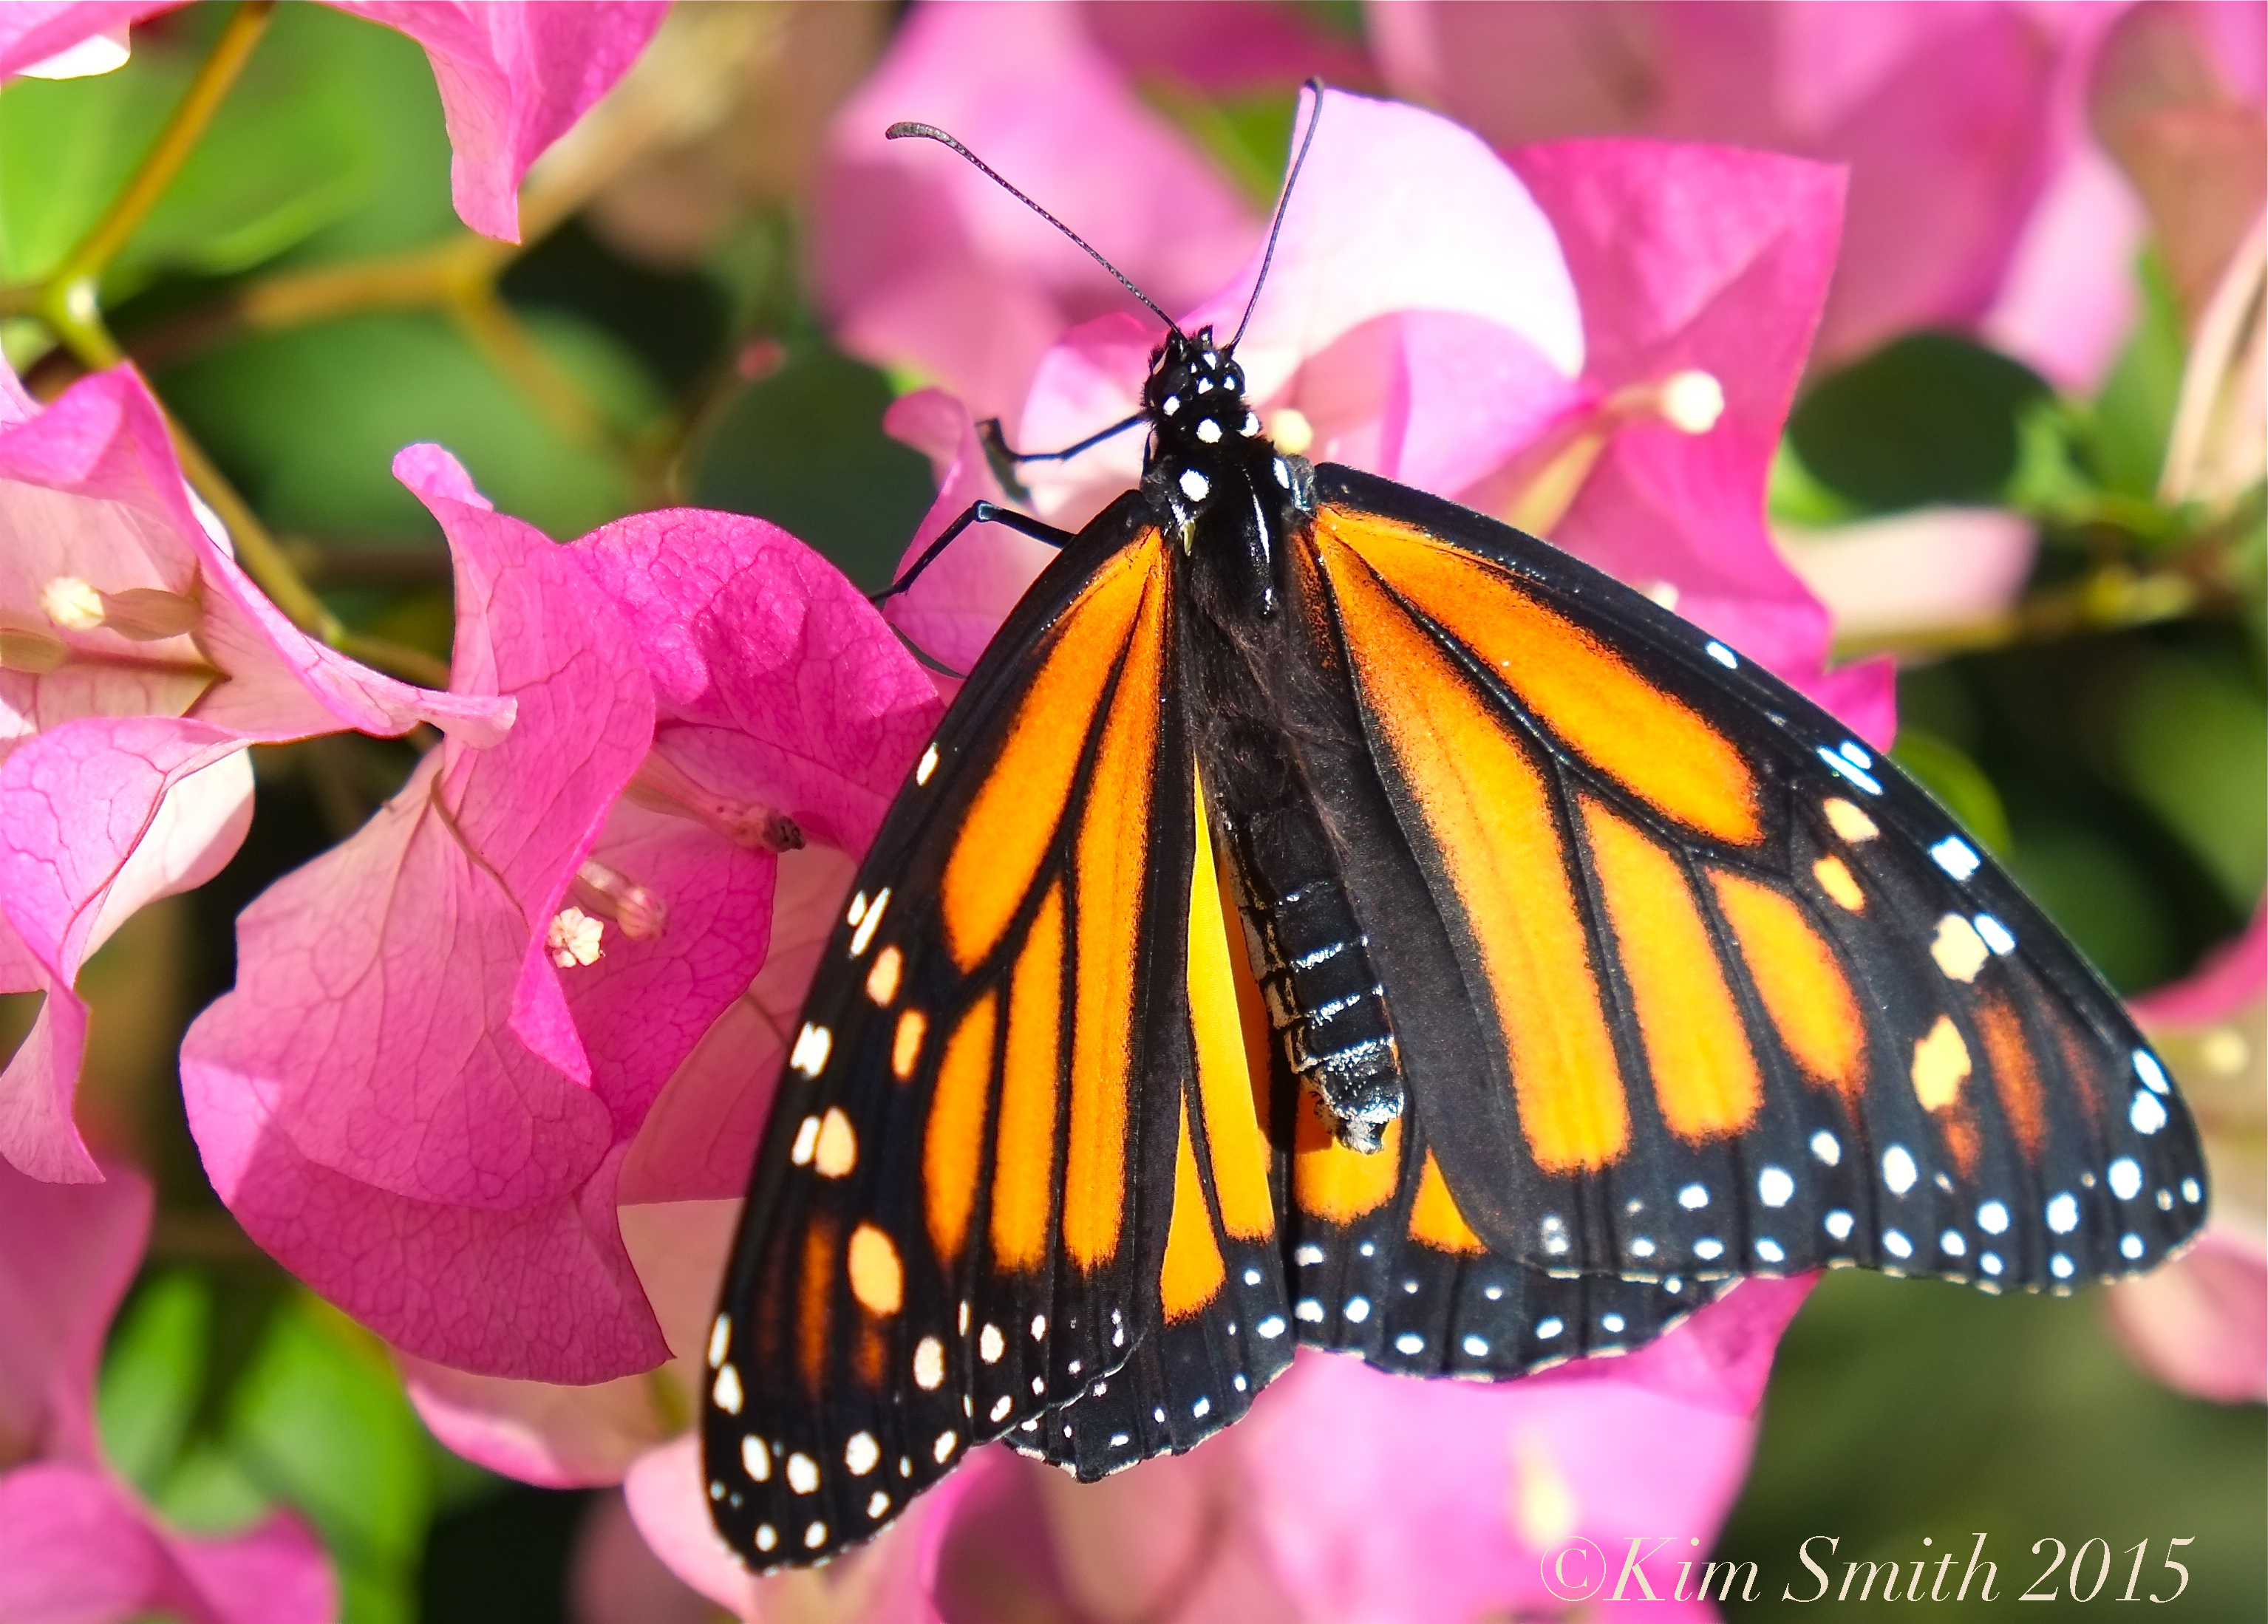 Butterfly - photo#39